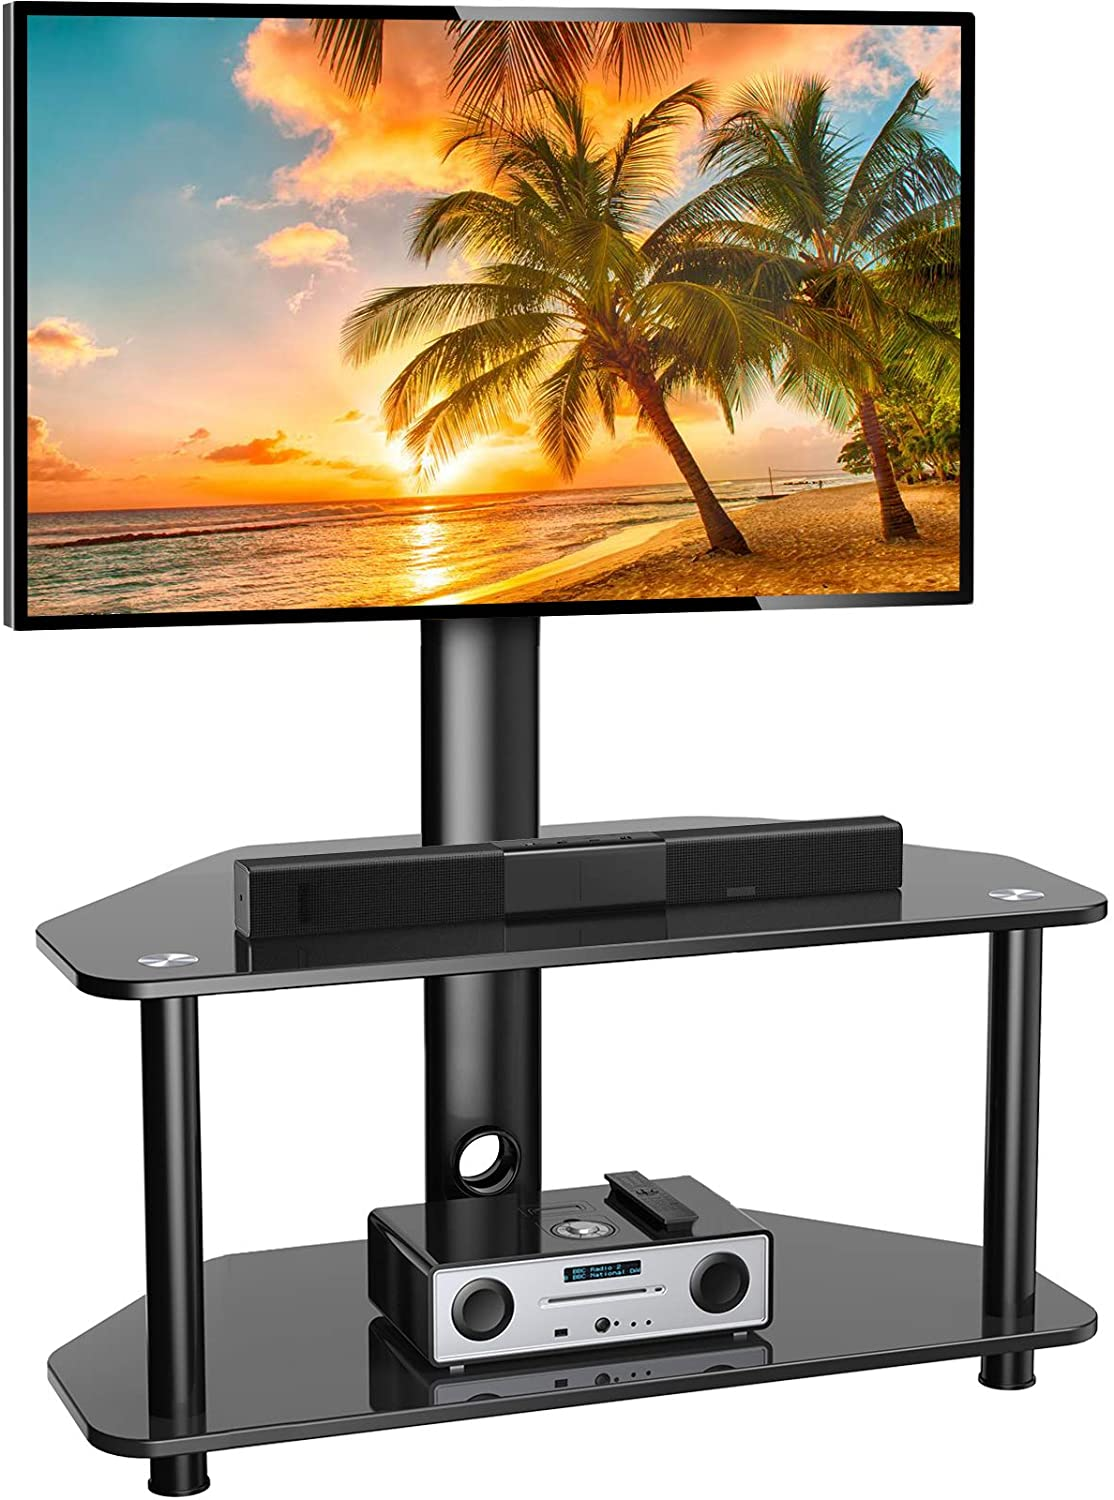 Swivel Floor TV Stand/Base for 32-55 Inch TVs-Universal Corner TV Floor Stand with Storage Perfect for Media-Height Adjustable Entertainment Stand with Tempered Glass&Cable Management, VESA 400x400mm